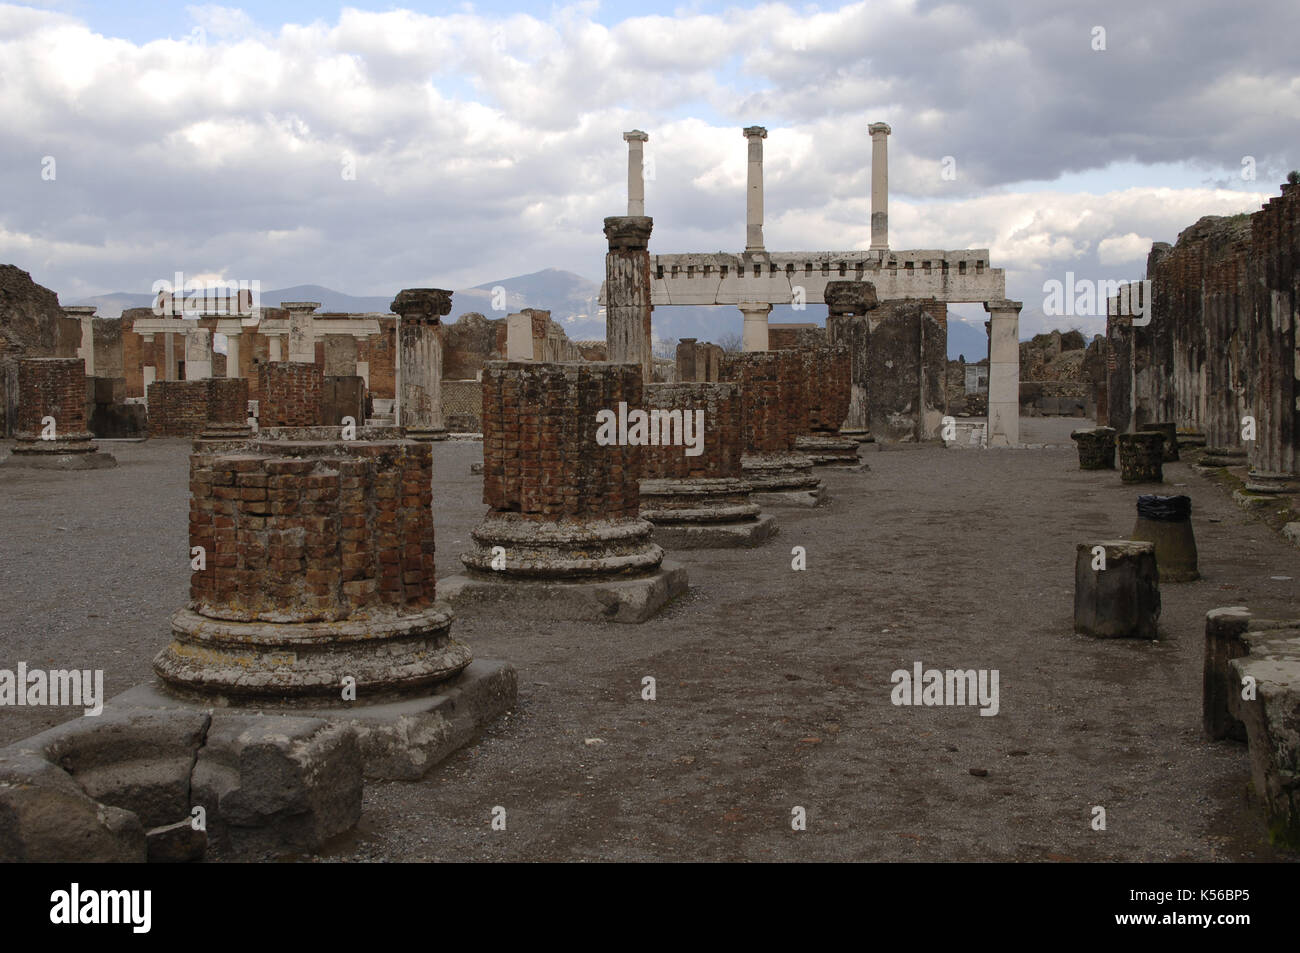 Italy. Pompeii. Ruins of the Basilica (late 2nd century BC). In the background, colonnade of forum. - Stock Image